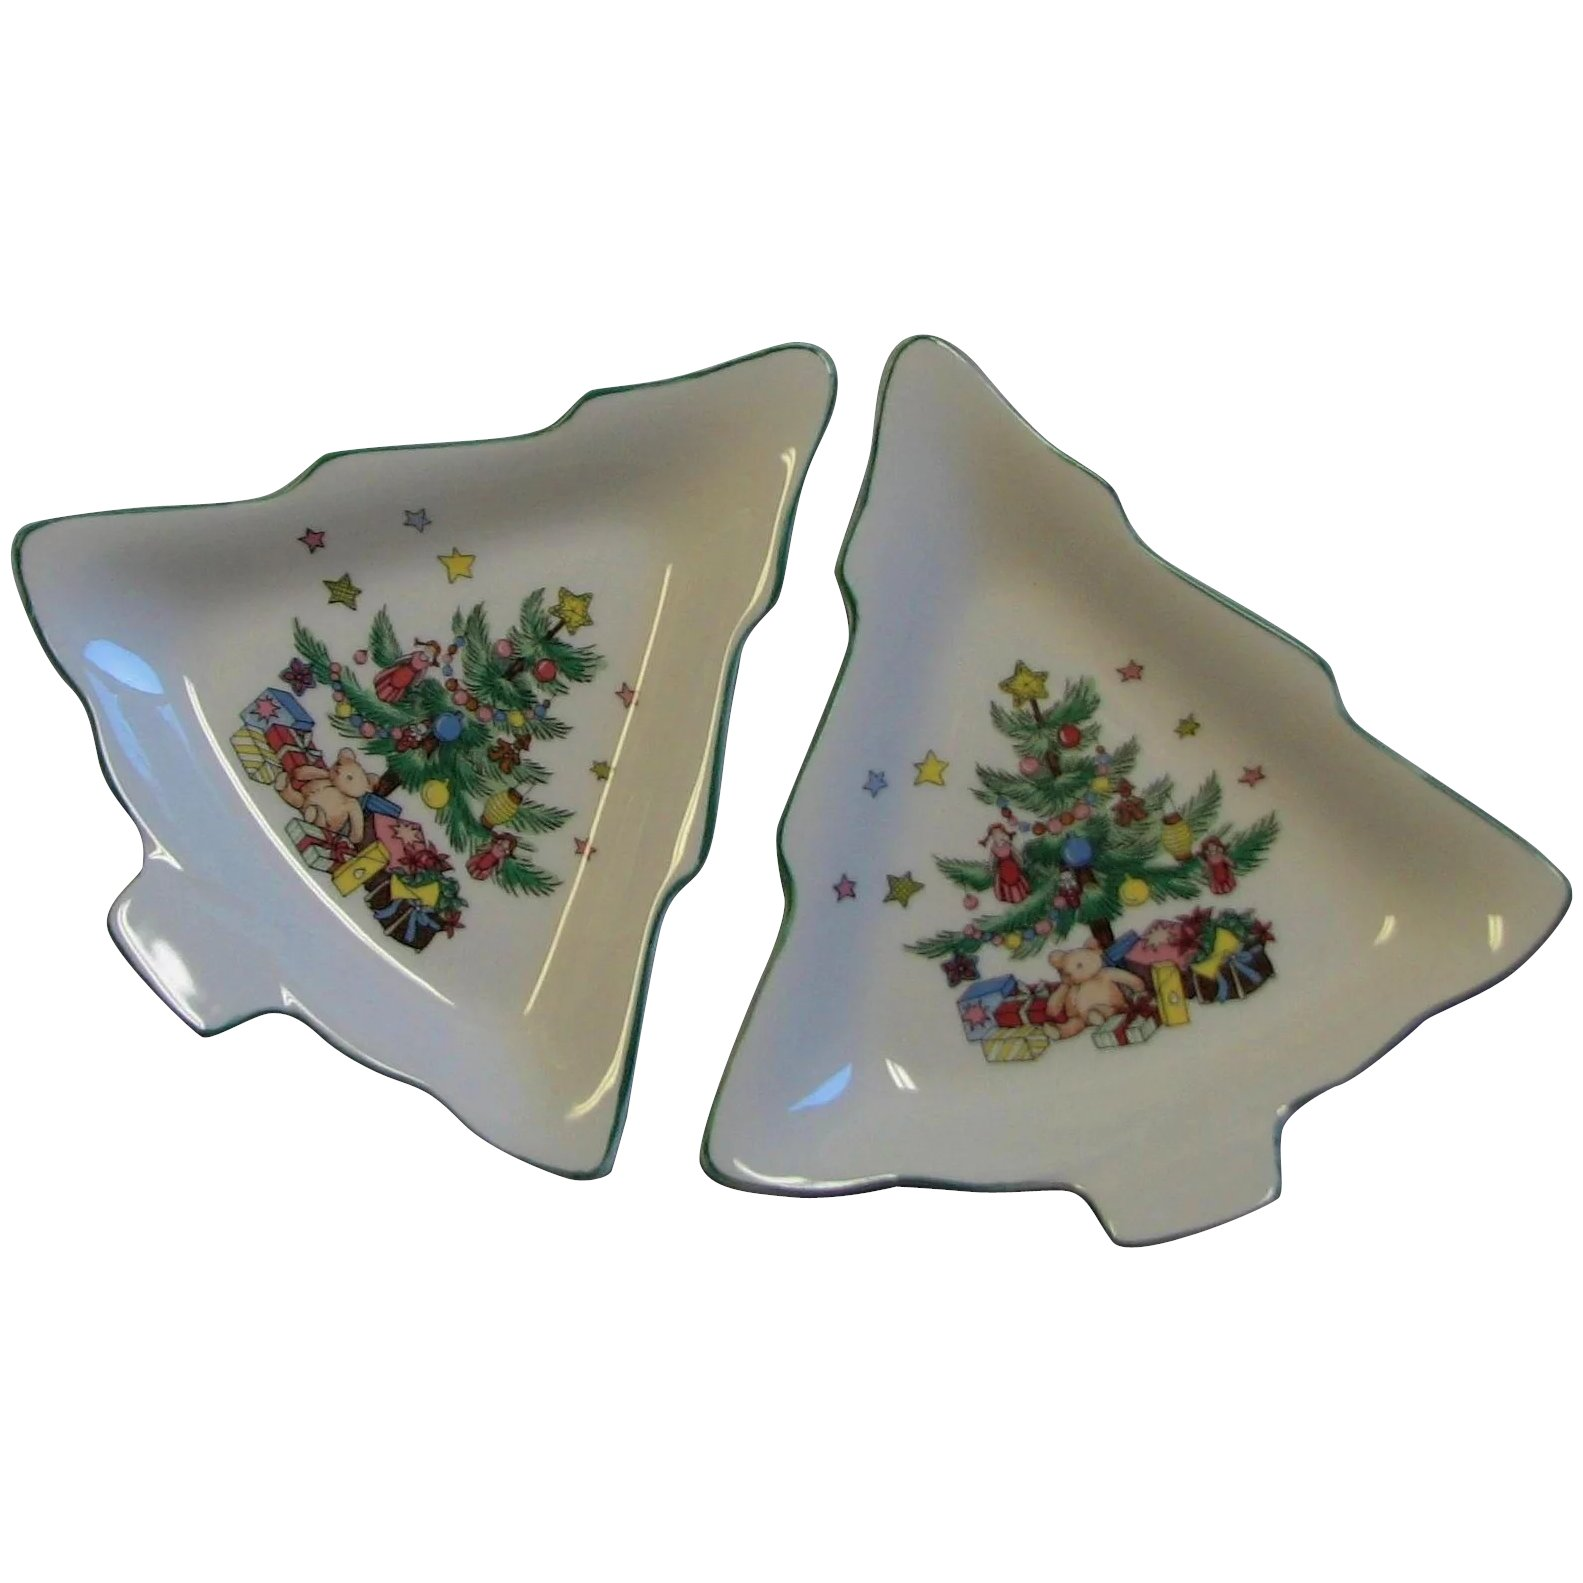 Spode Christmas Tree.Spode Christmas Tree Shaped Dishes